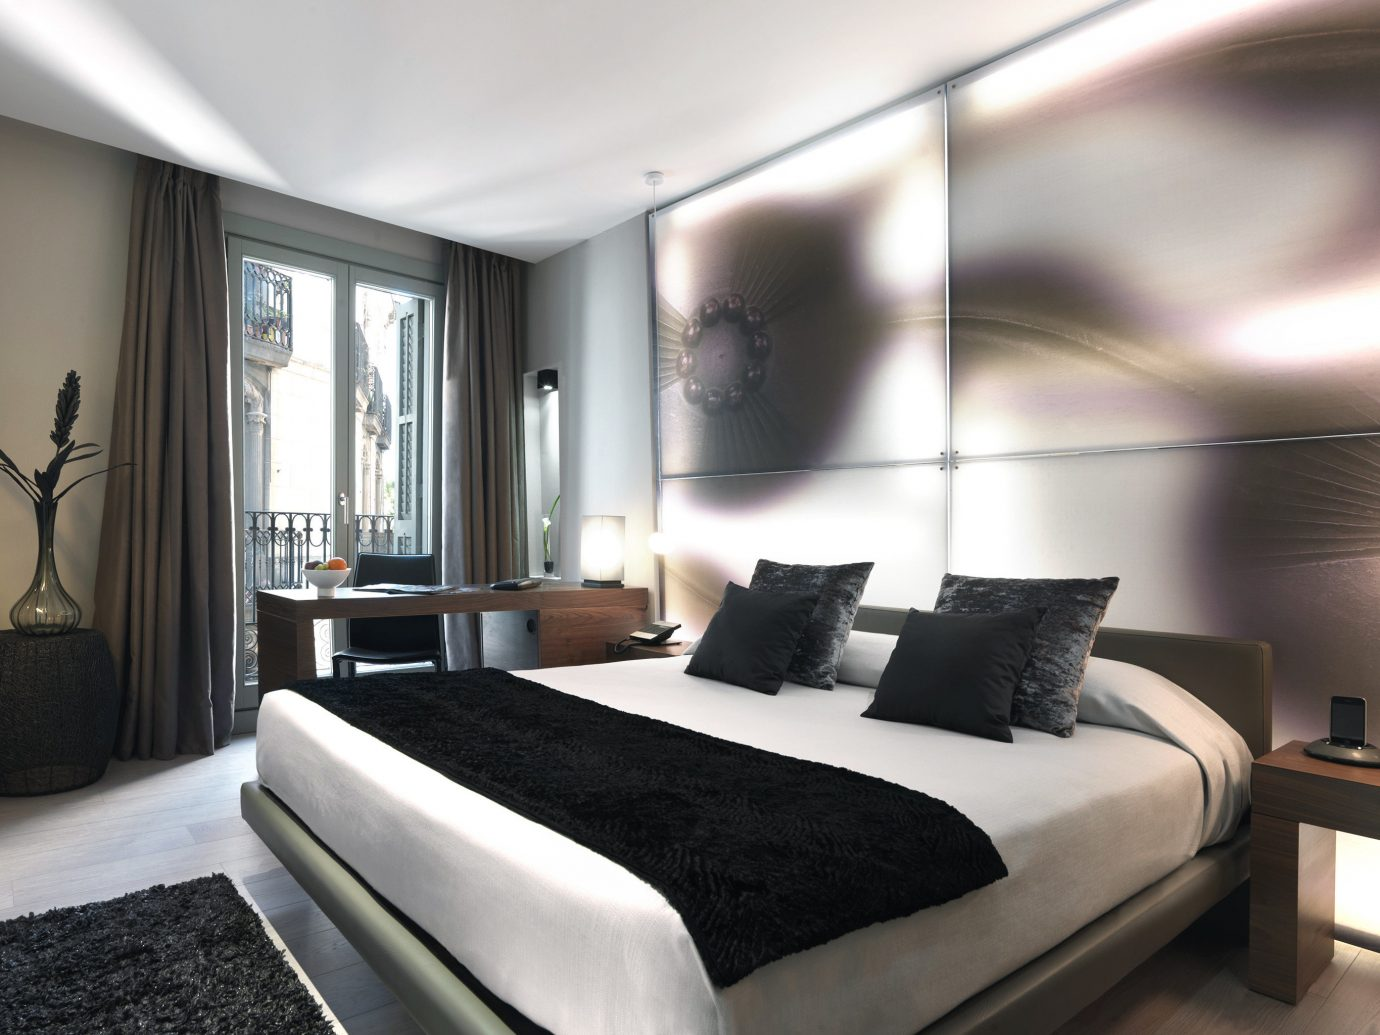 Bedroom Boutique Hotels City Hip Historic Hotels Living indoor wall room floor bed ceiling property hotel interior design Suite condominium real estate estate living room apartment furniture decorated